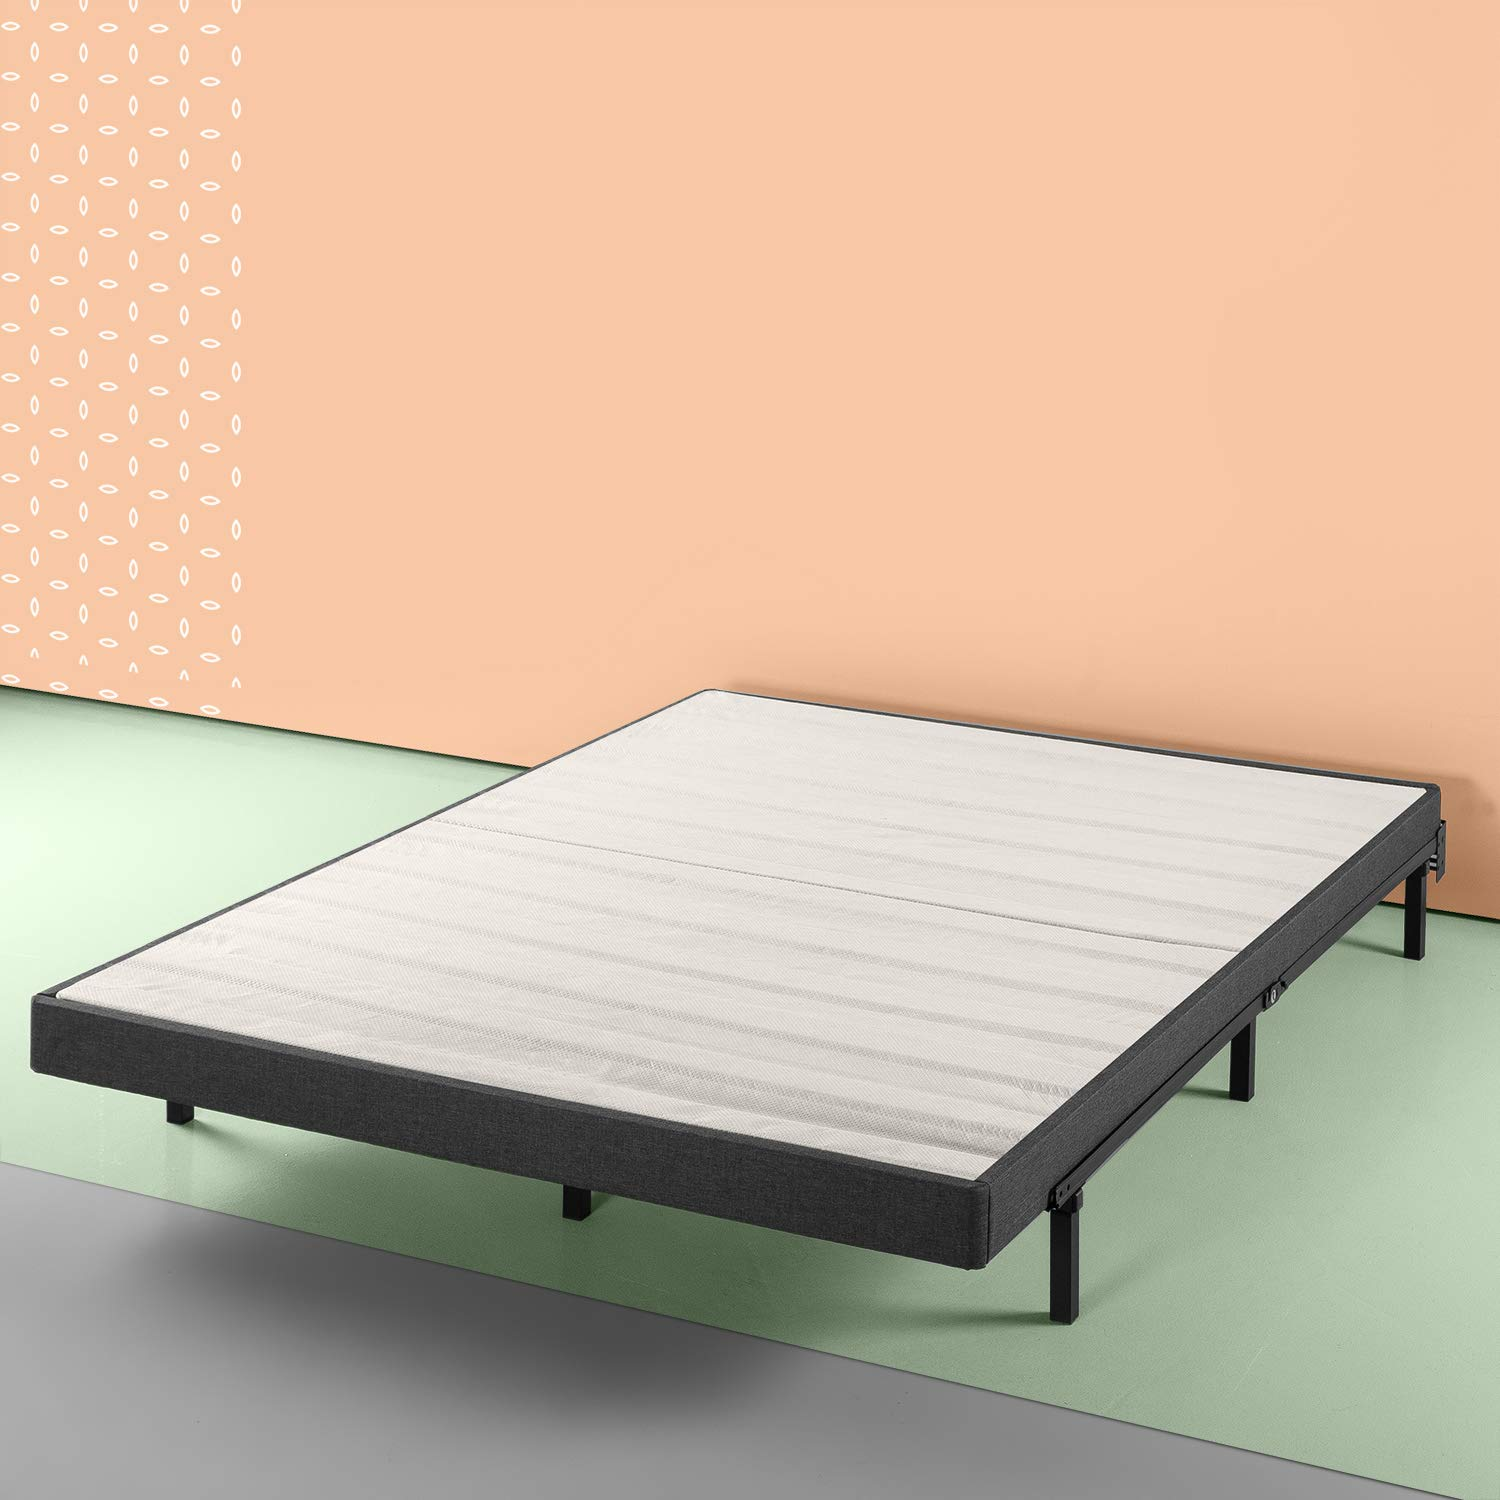 Zinus Daniel 4 Inch Essential Box Spring / Mattress Foundation / Easy Assembly Required, Queen by Zinus